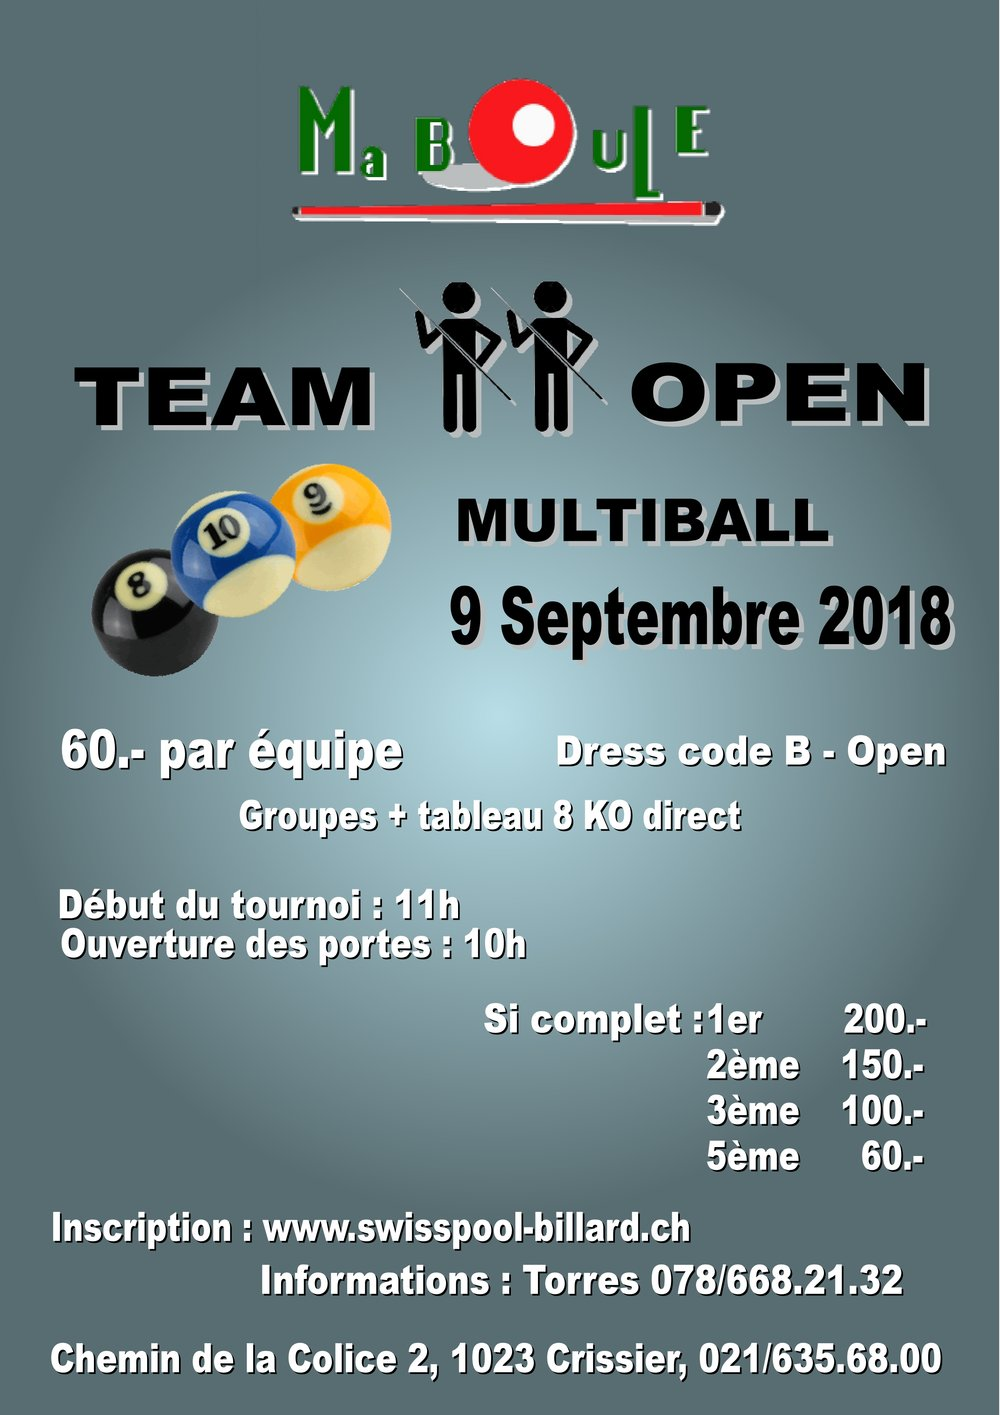 Affiche team open 9 septembre 2018 déf.2 (1).jpg